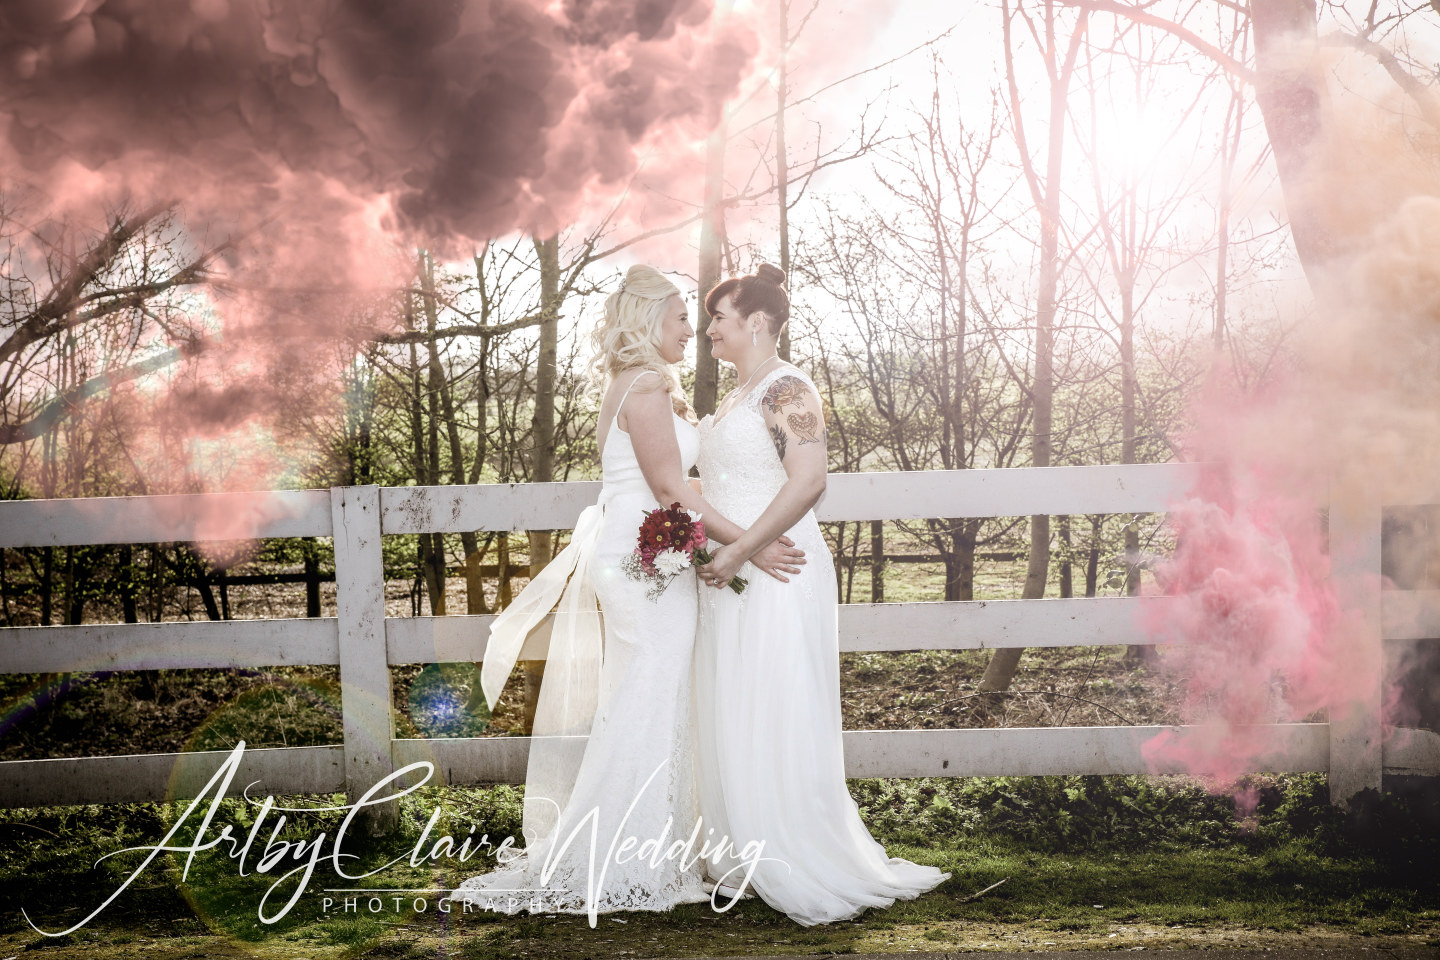 ArtbyClaire Creative Wedding Photography, Hertfordshire